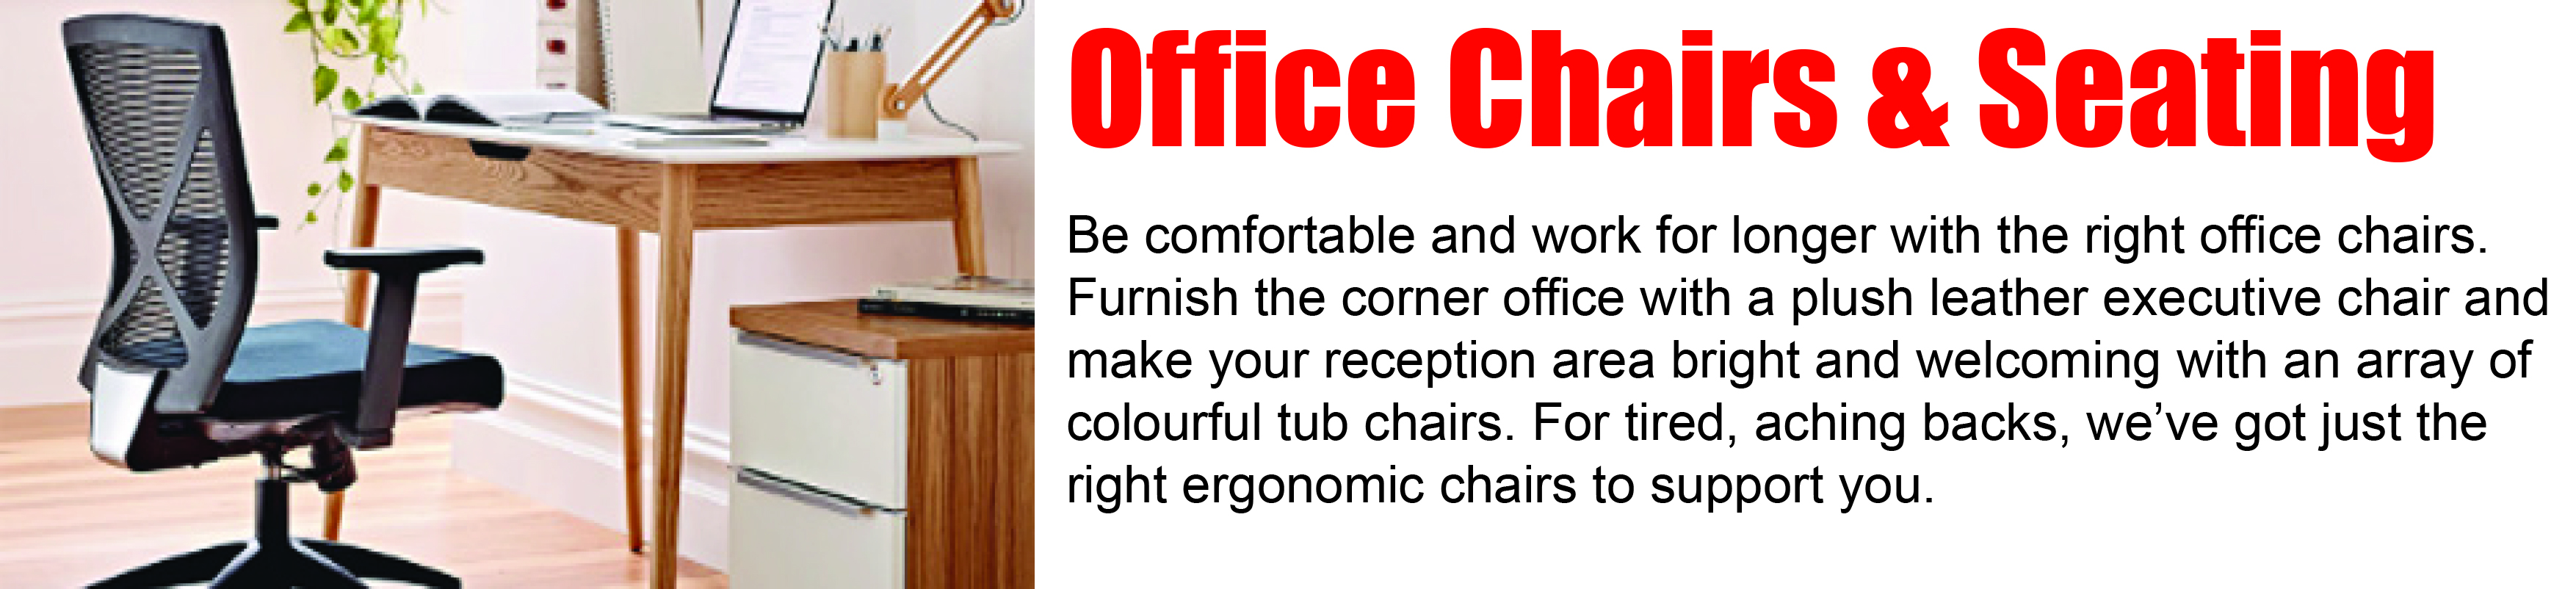 Office chair for sale jhb - Office Furniture